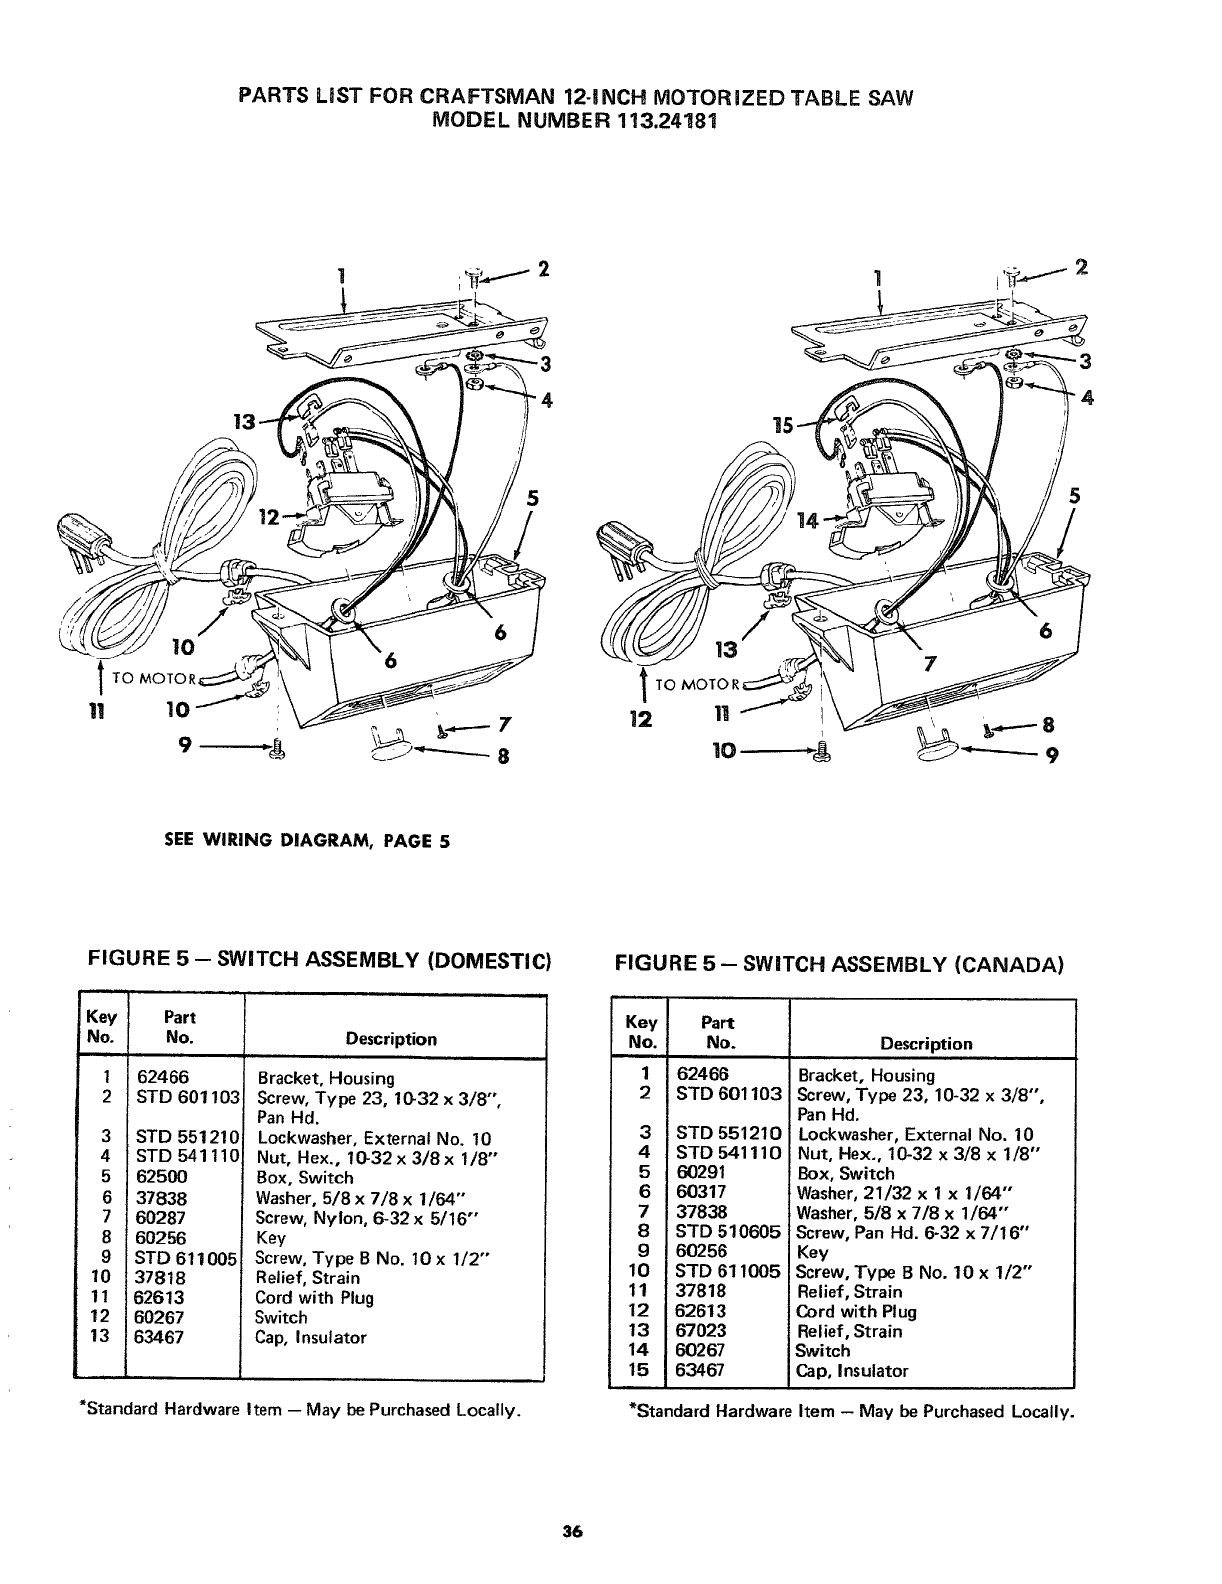 Wiring Diagram For Craftsman Table Saw Simple Guide About Ridgid K 400 Switch 33